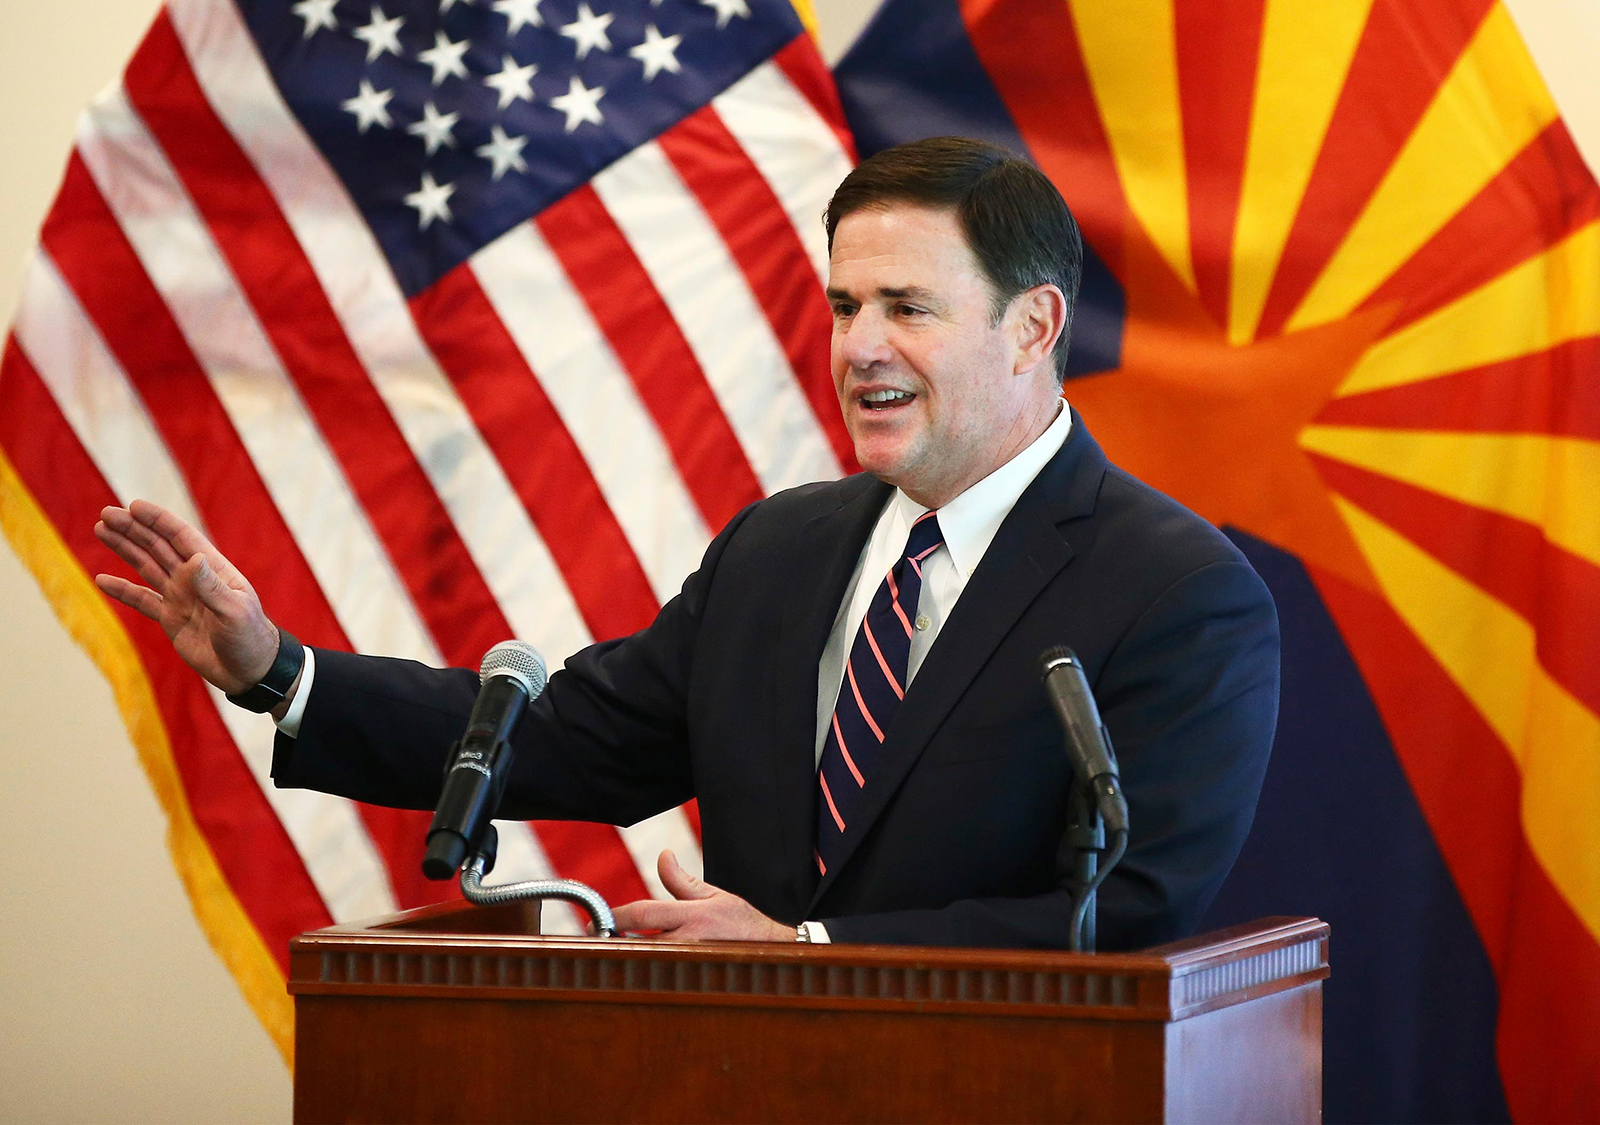 Arizona Gov. Doug Ducey gives an update on the Covid-19 pandemic response, on April 14, in Phoenix, Arizona.